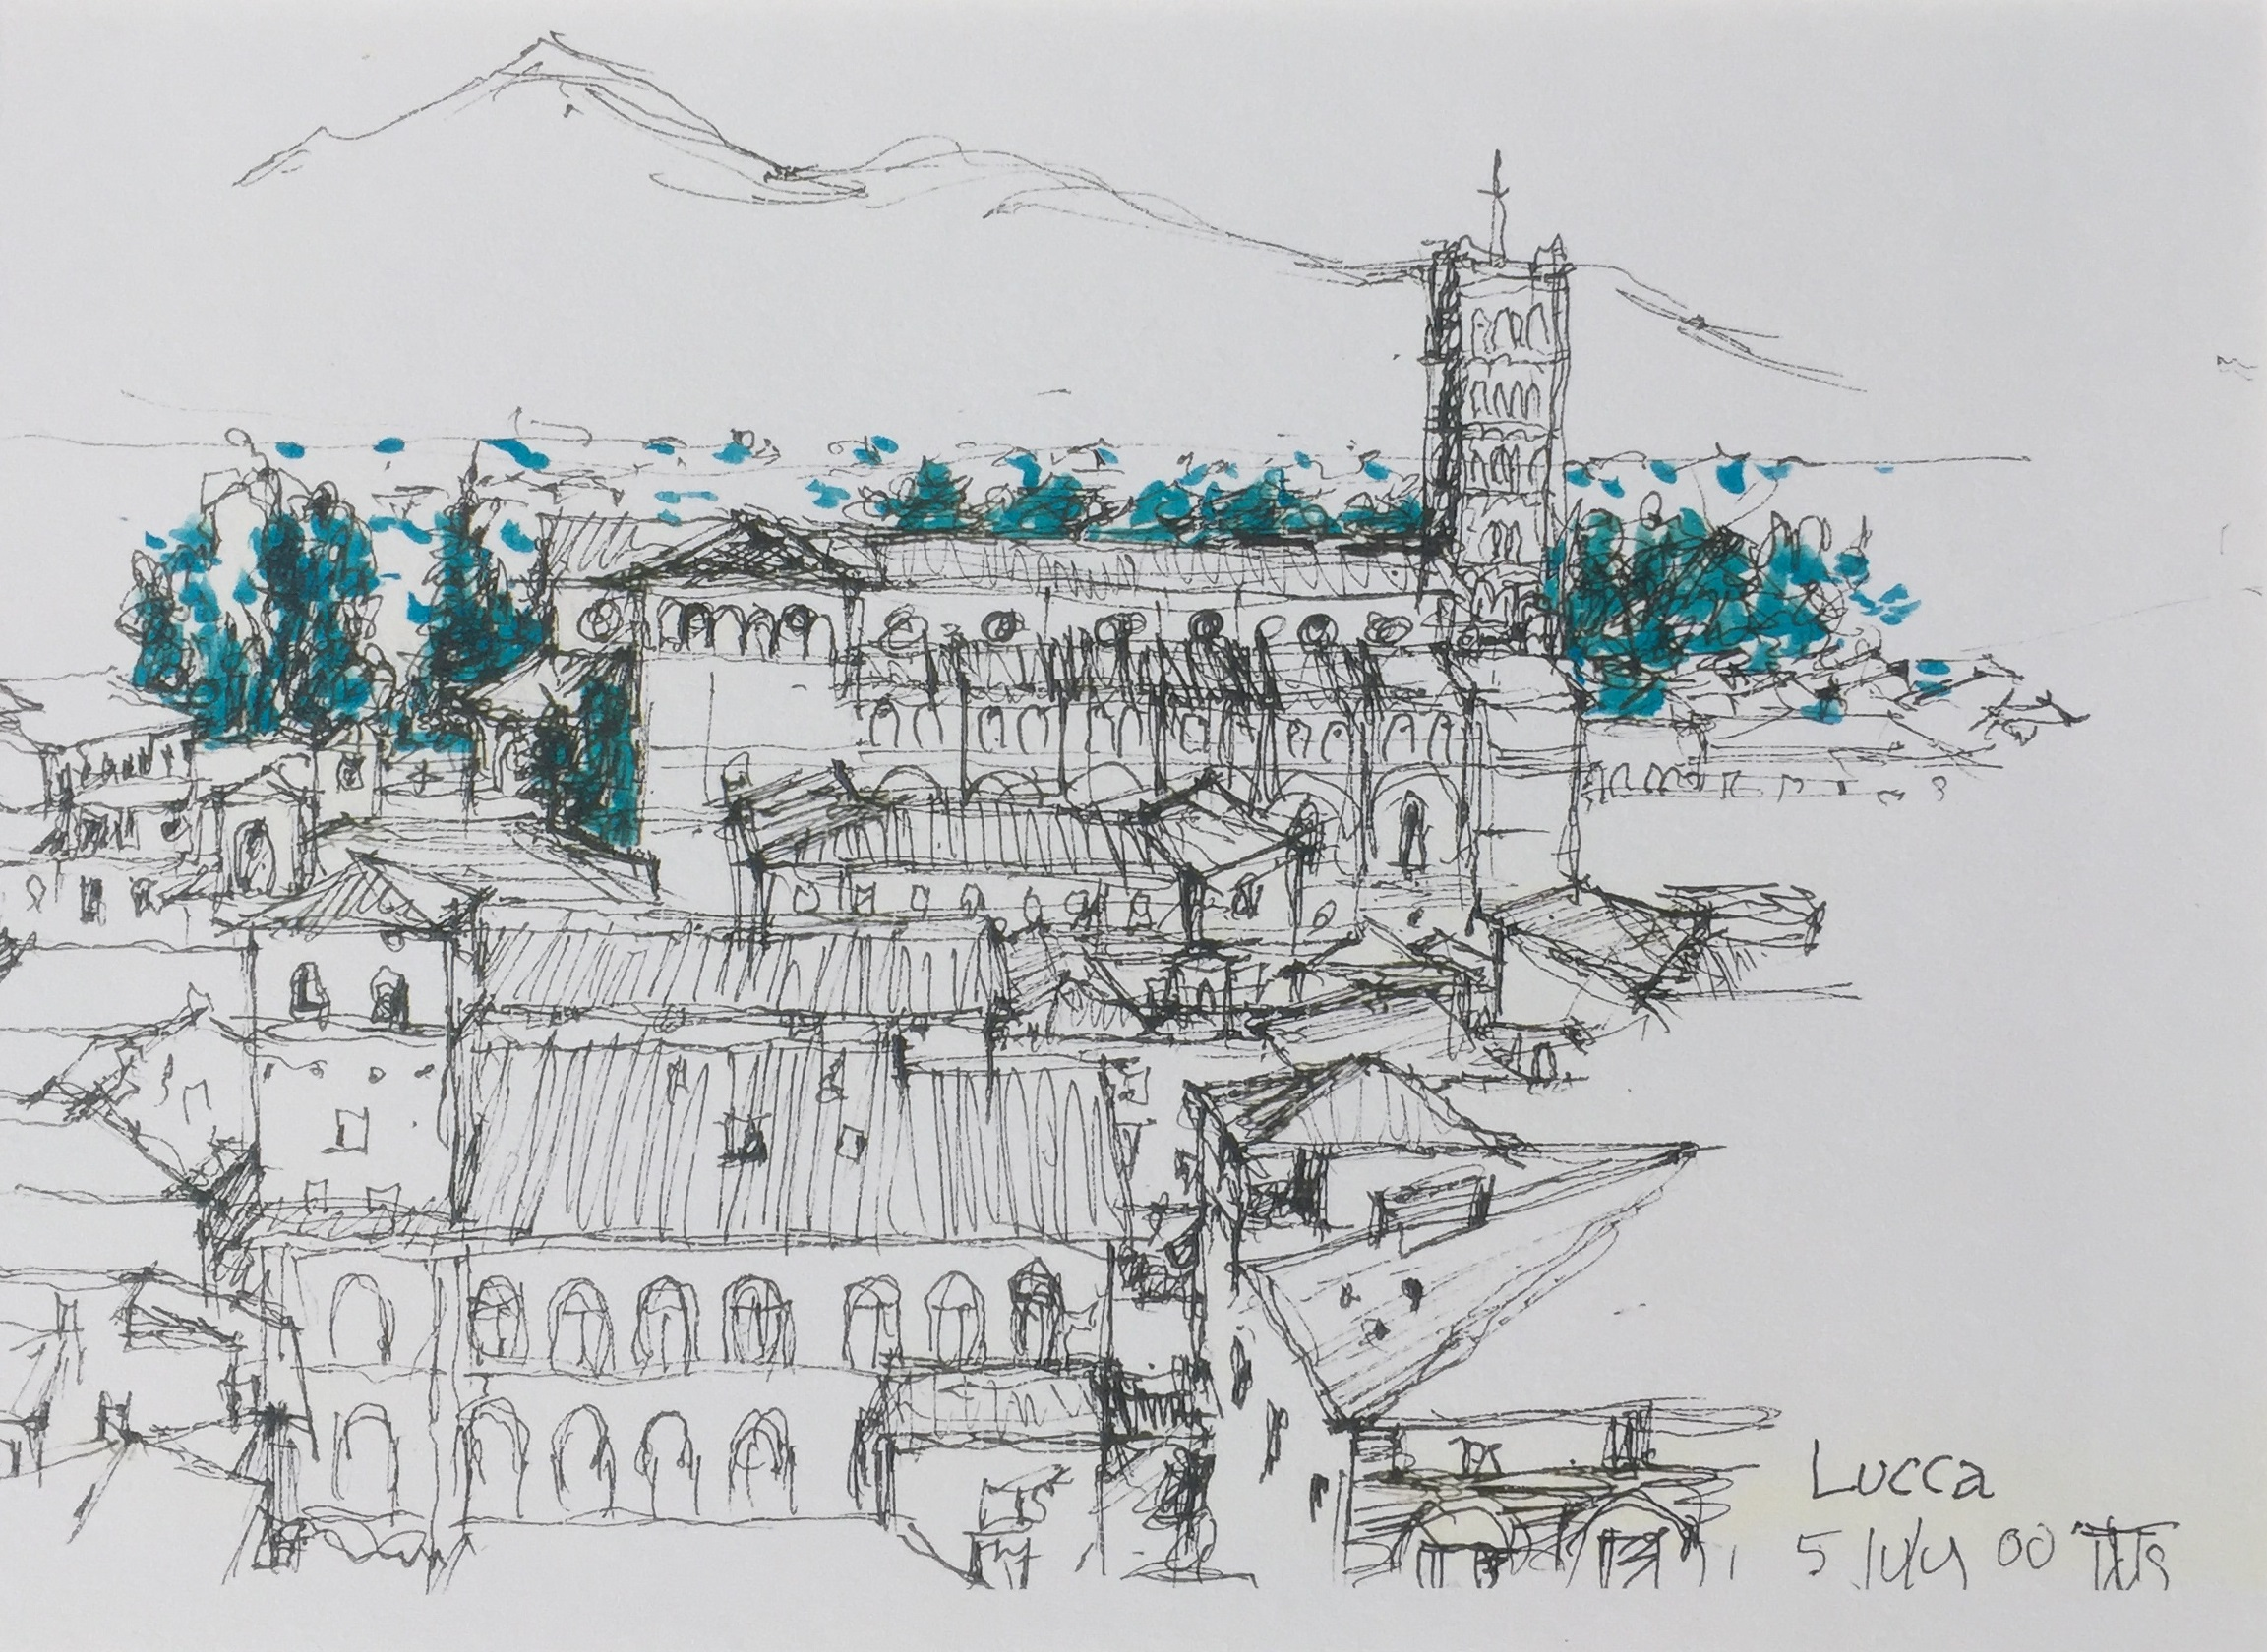 Lucca, featuring San Michele